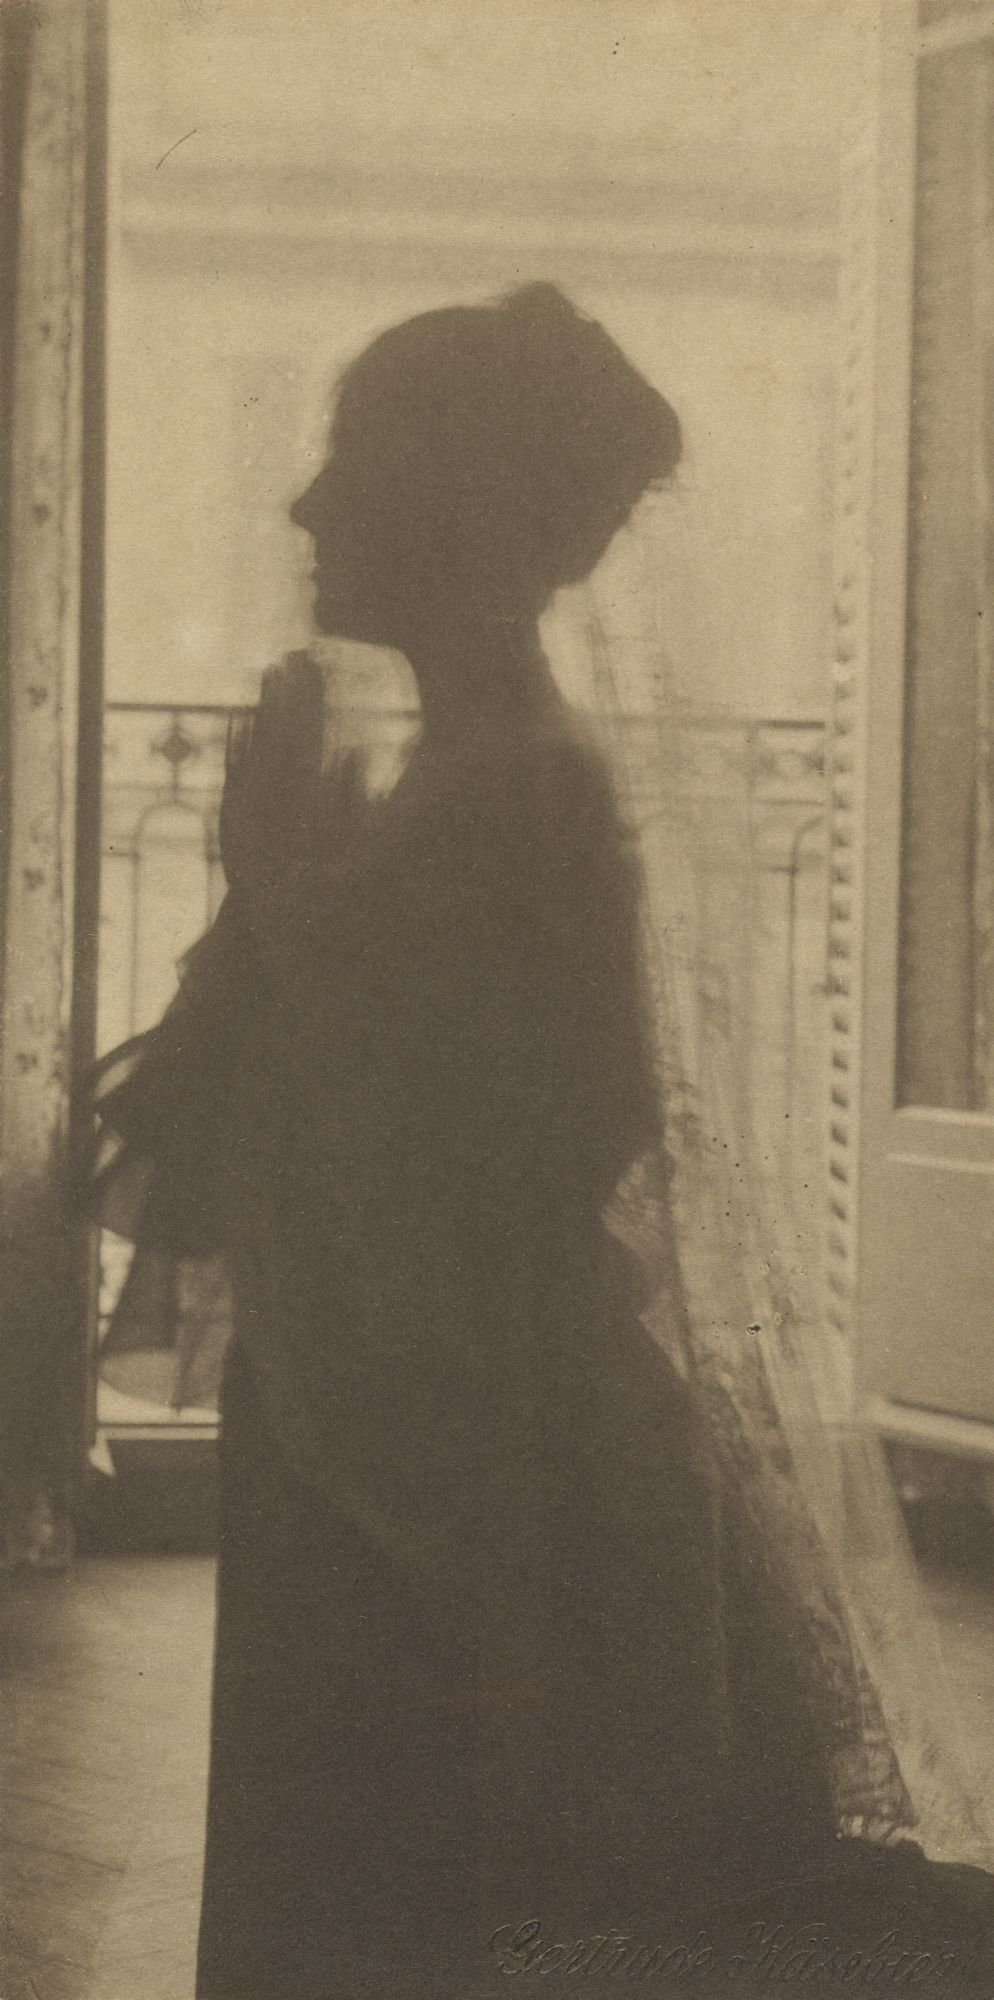 Silhouette of a Woman / A Maiden at Prayer, about 1899